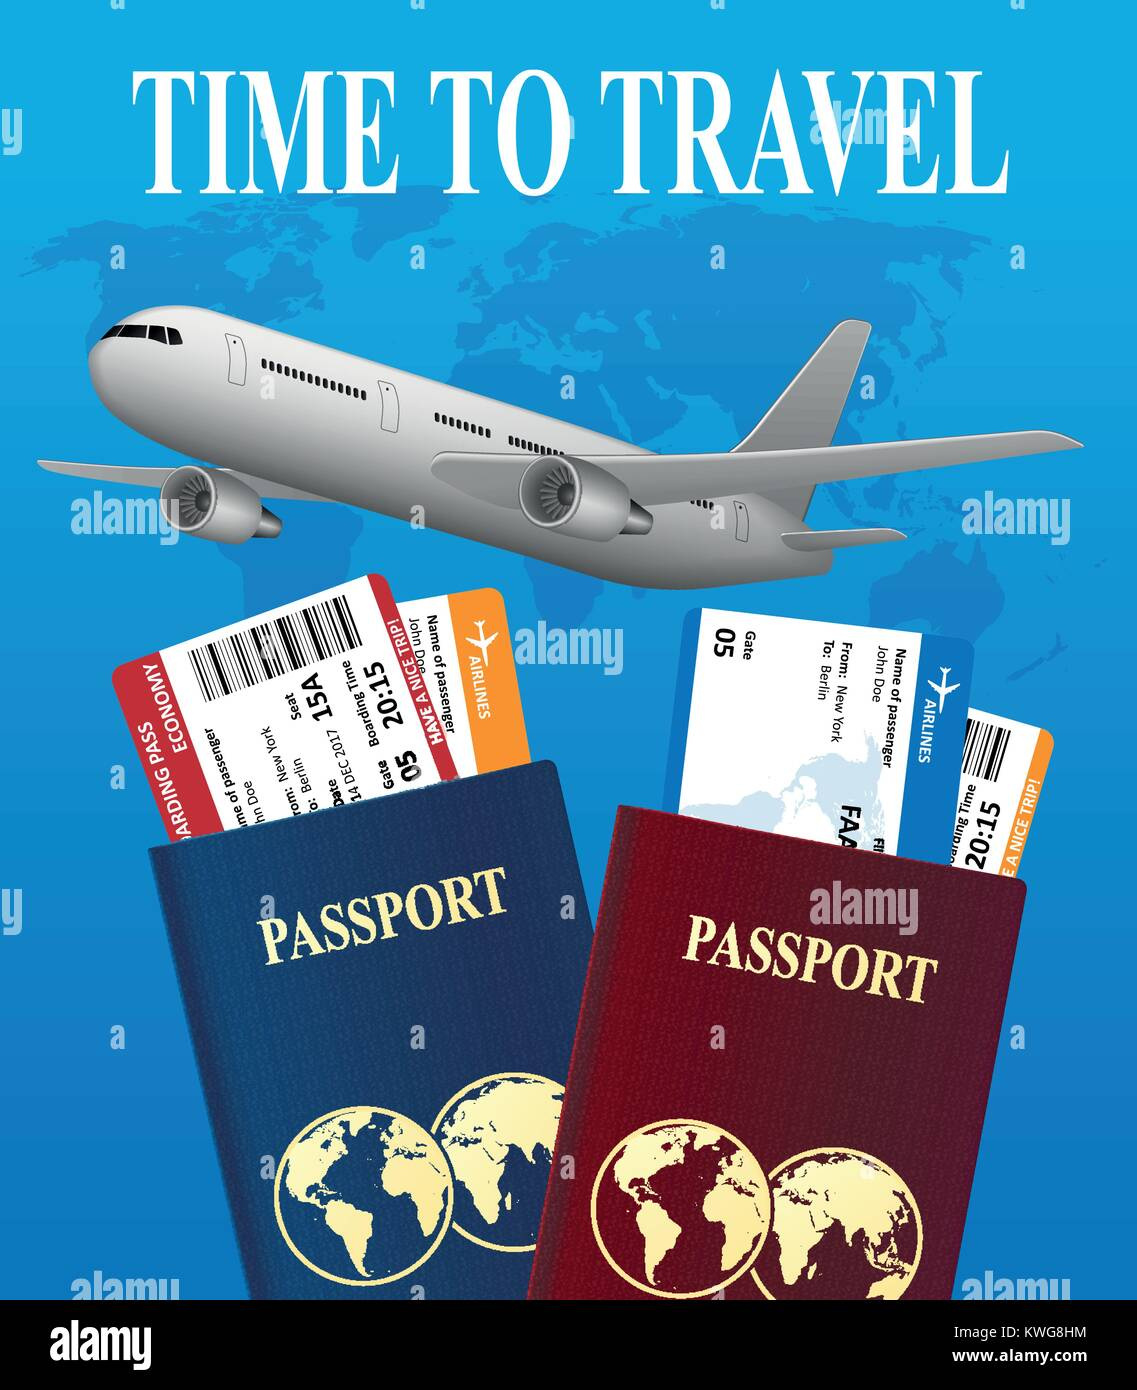 a5f9c721c9 Air travel international vacation concept. Business travel banner with  airline tickets and realistic airplane. Vector illustration